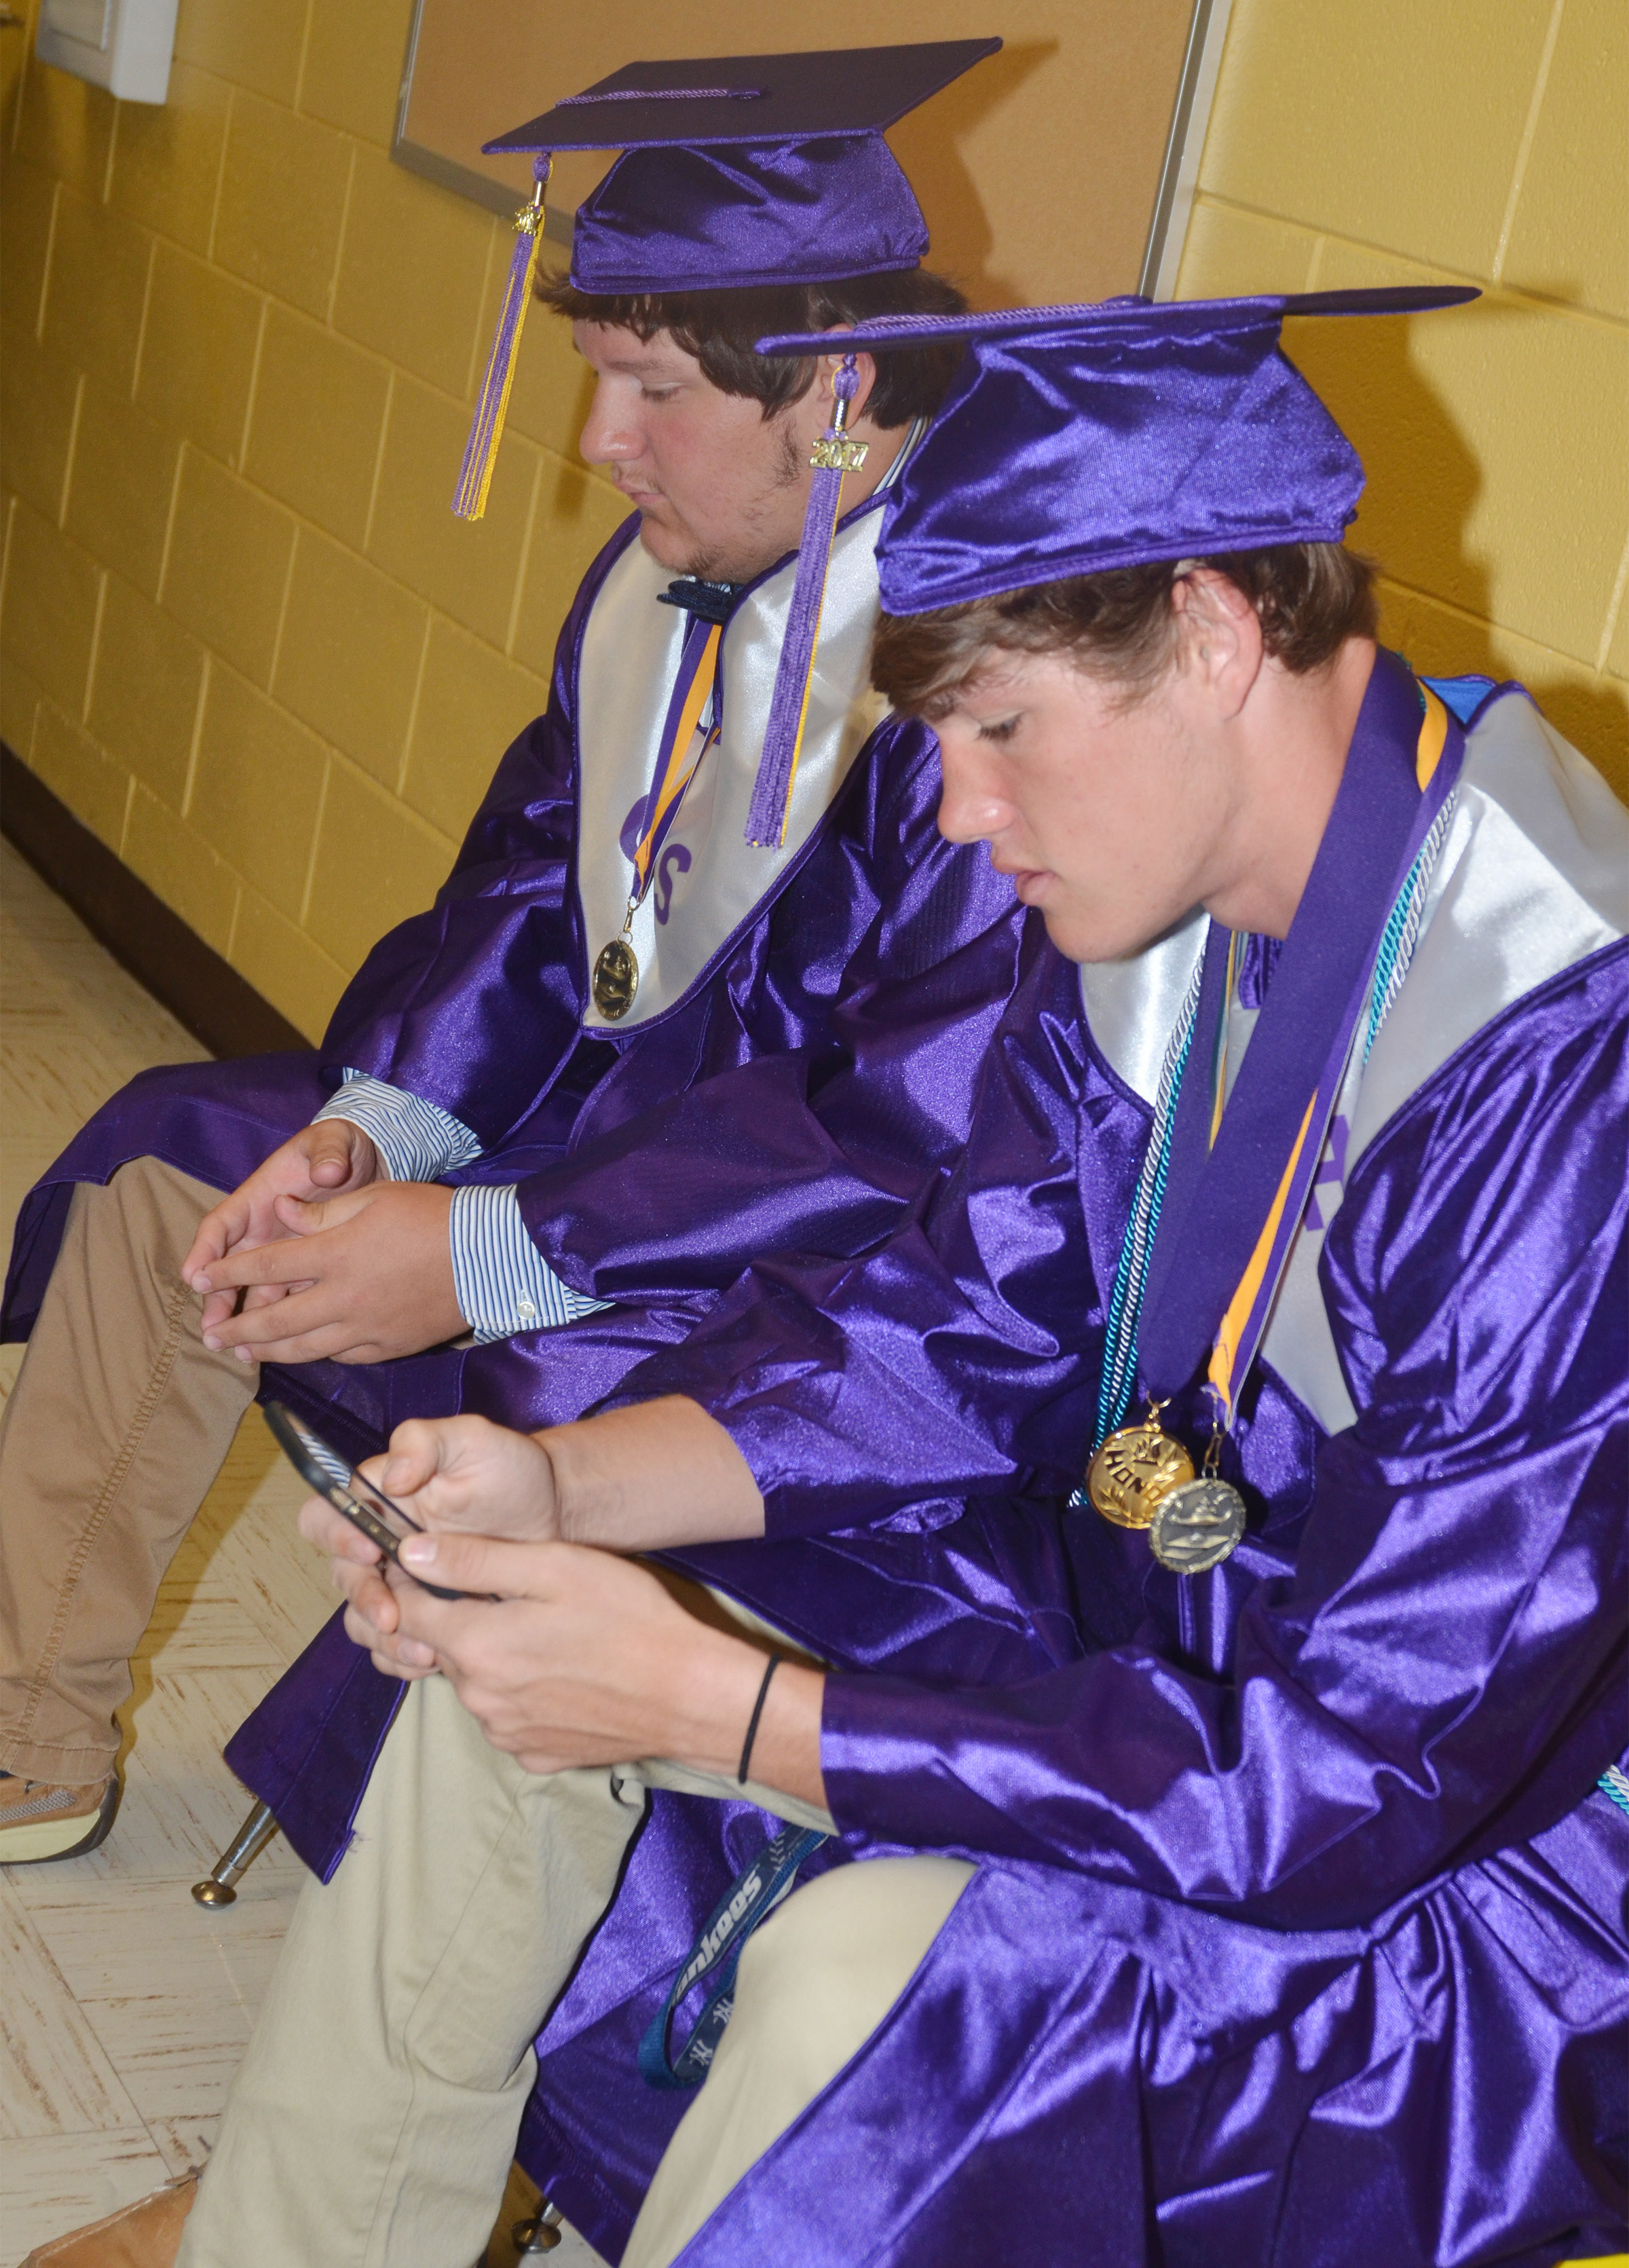 CHS seniors Donnie Osinger, at left, and Zack Bottoms talk before graduation.